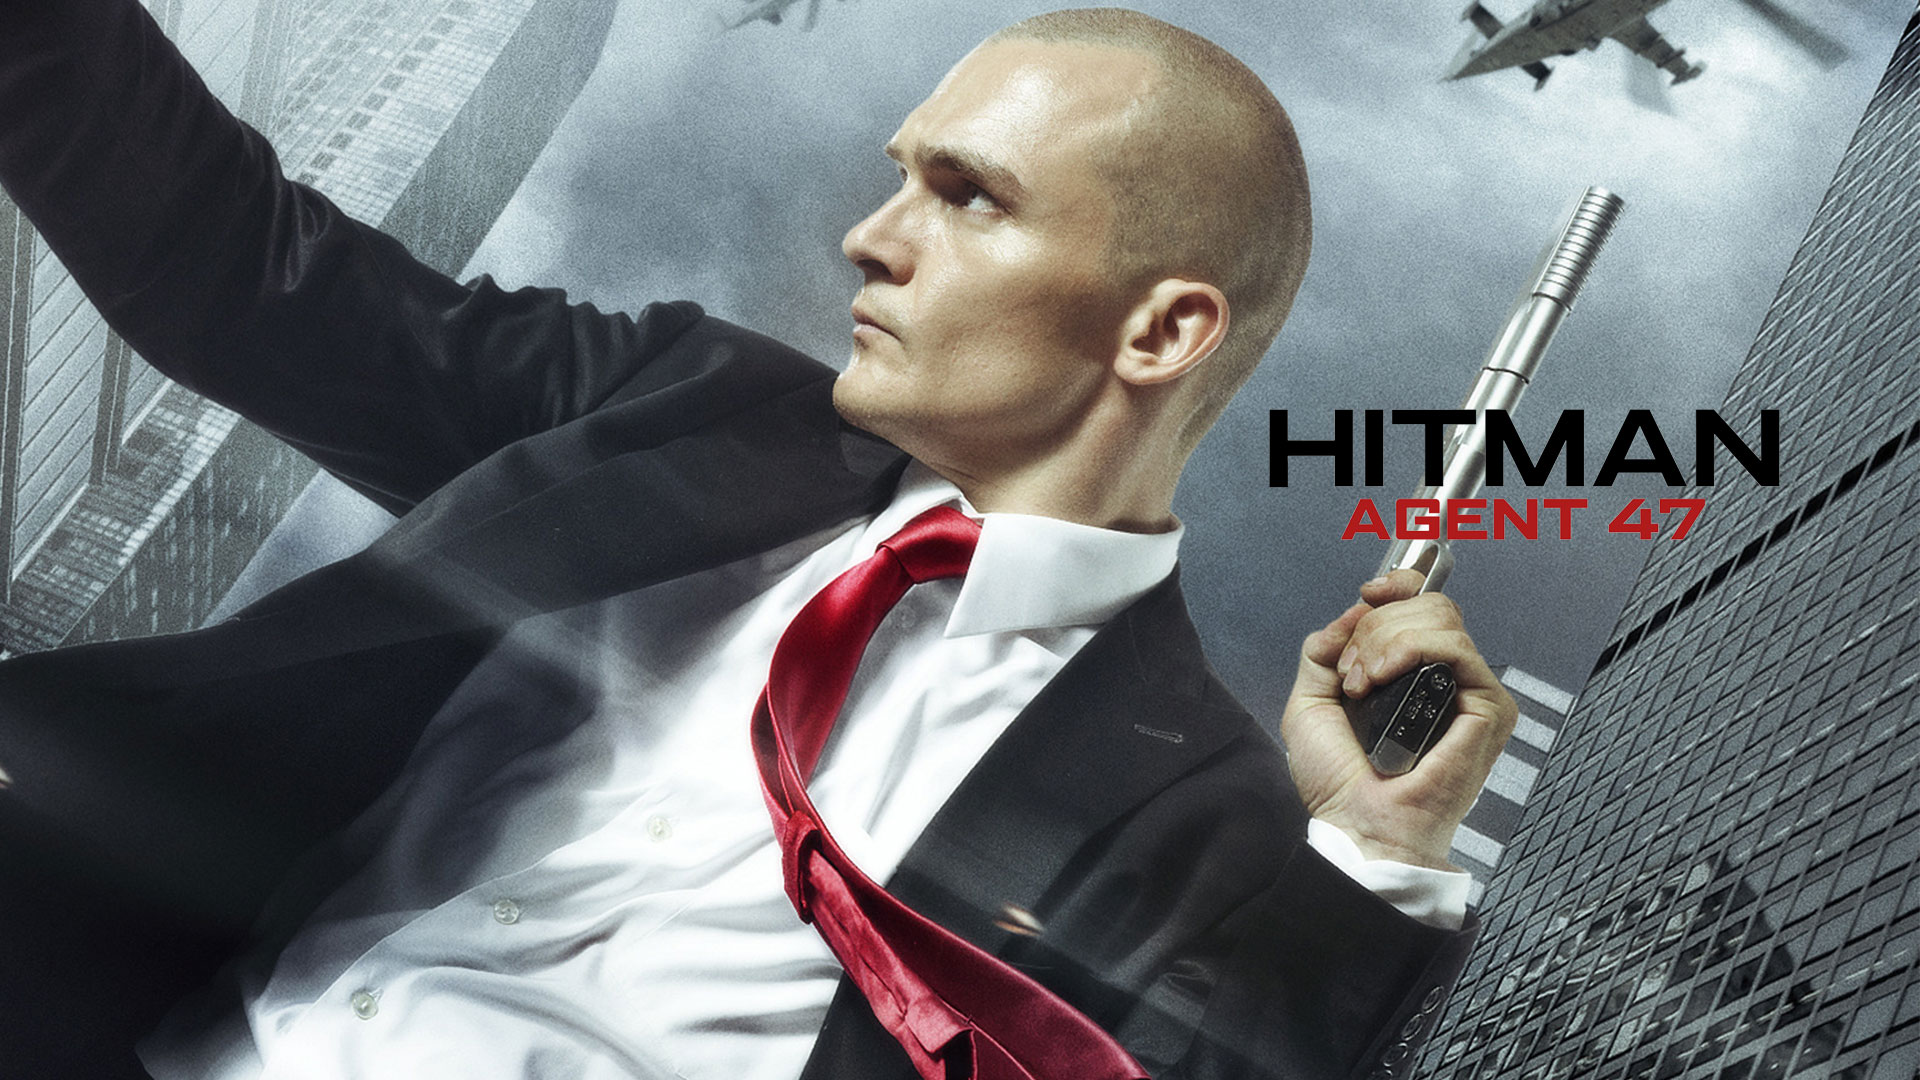 hitman movie cast 2017